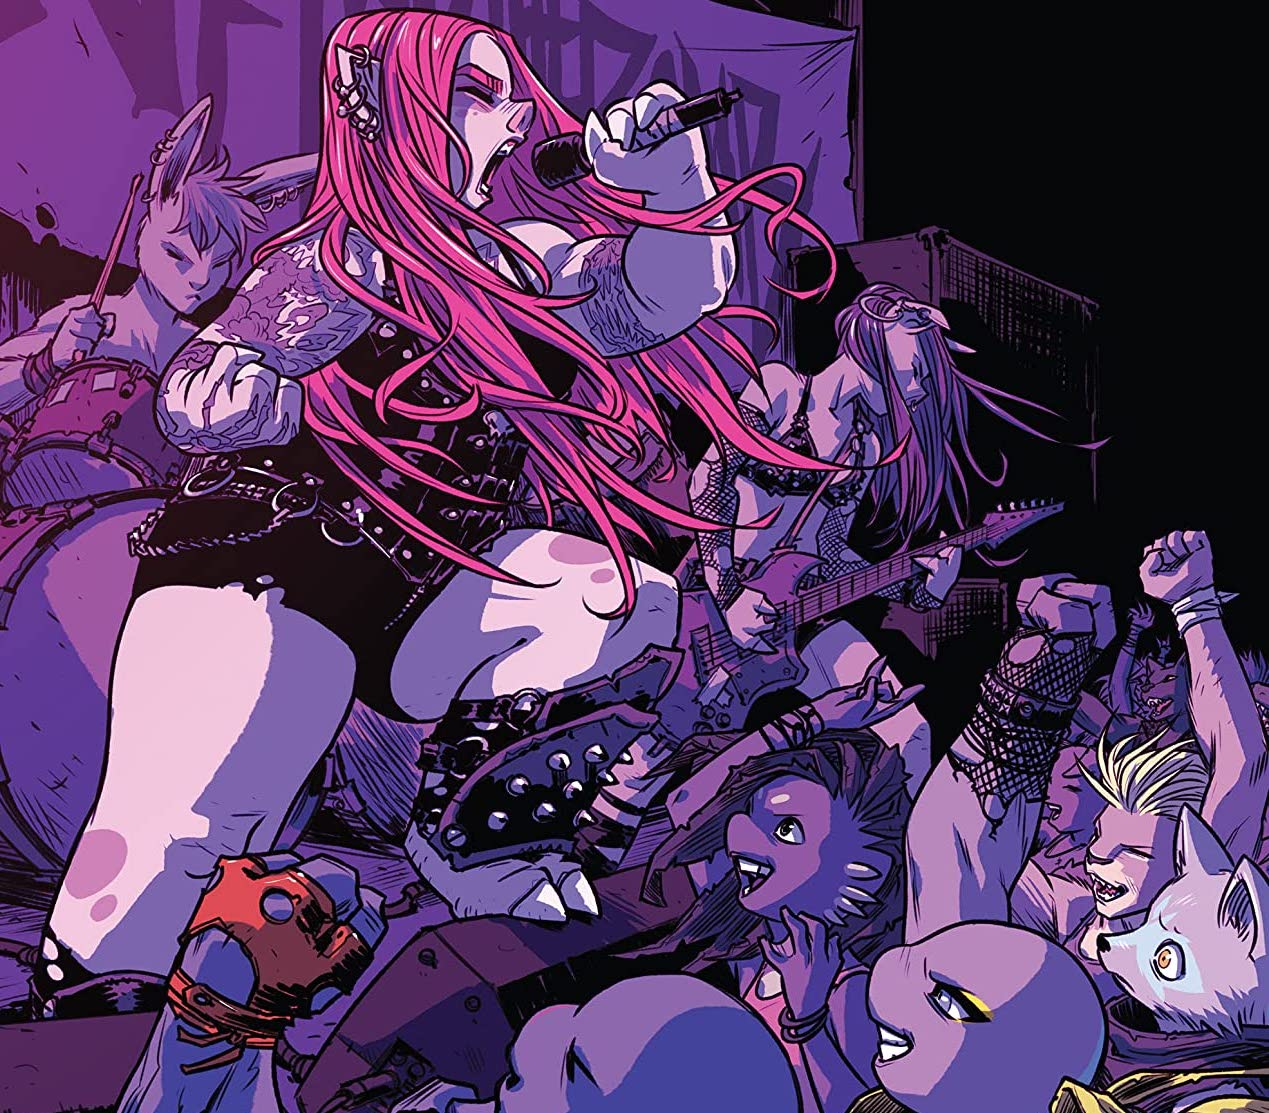 'Teenage Mutant Ninja Turtles' #105 review